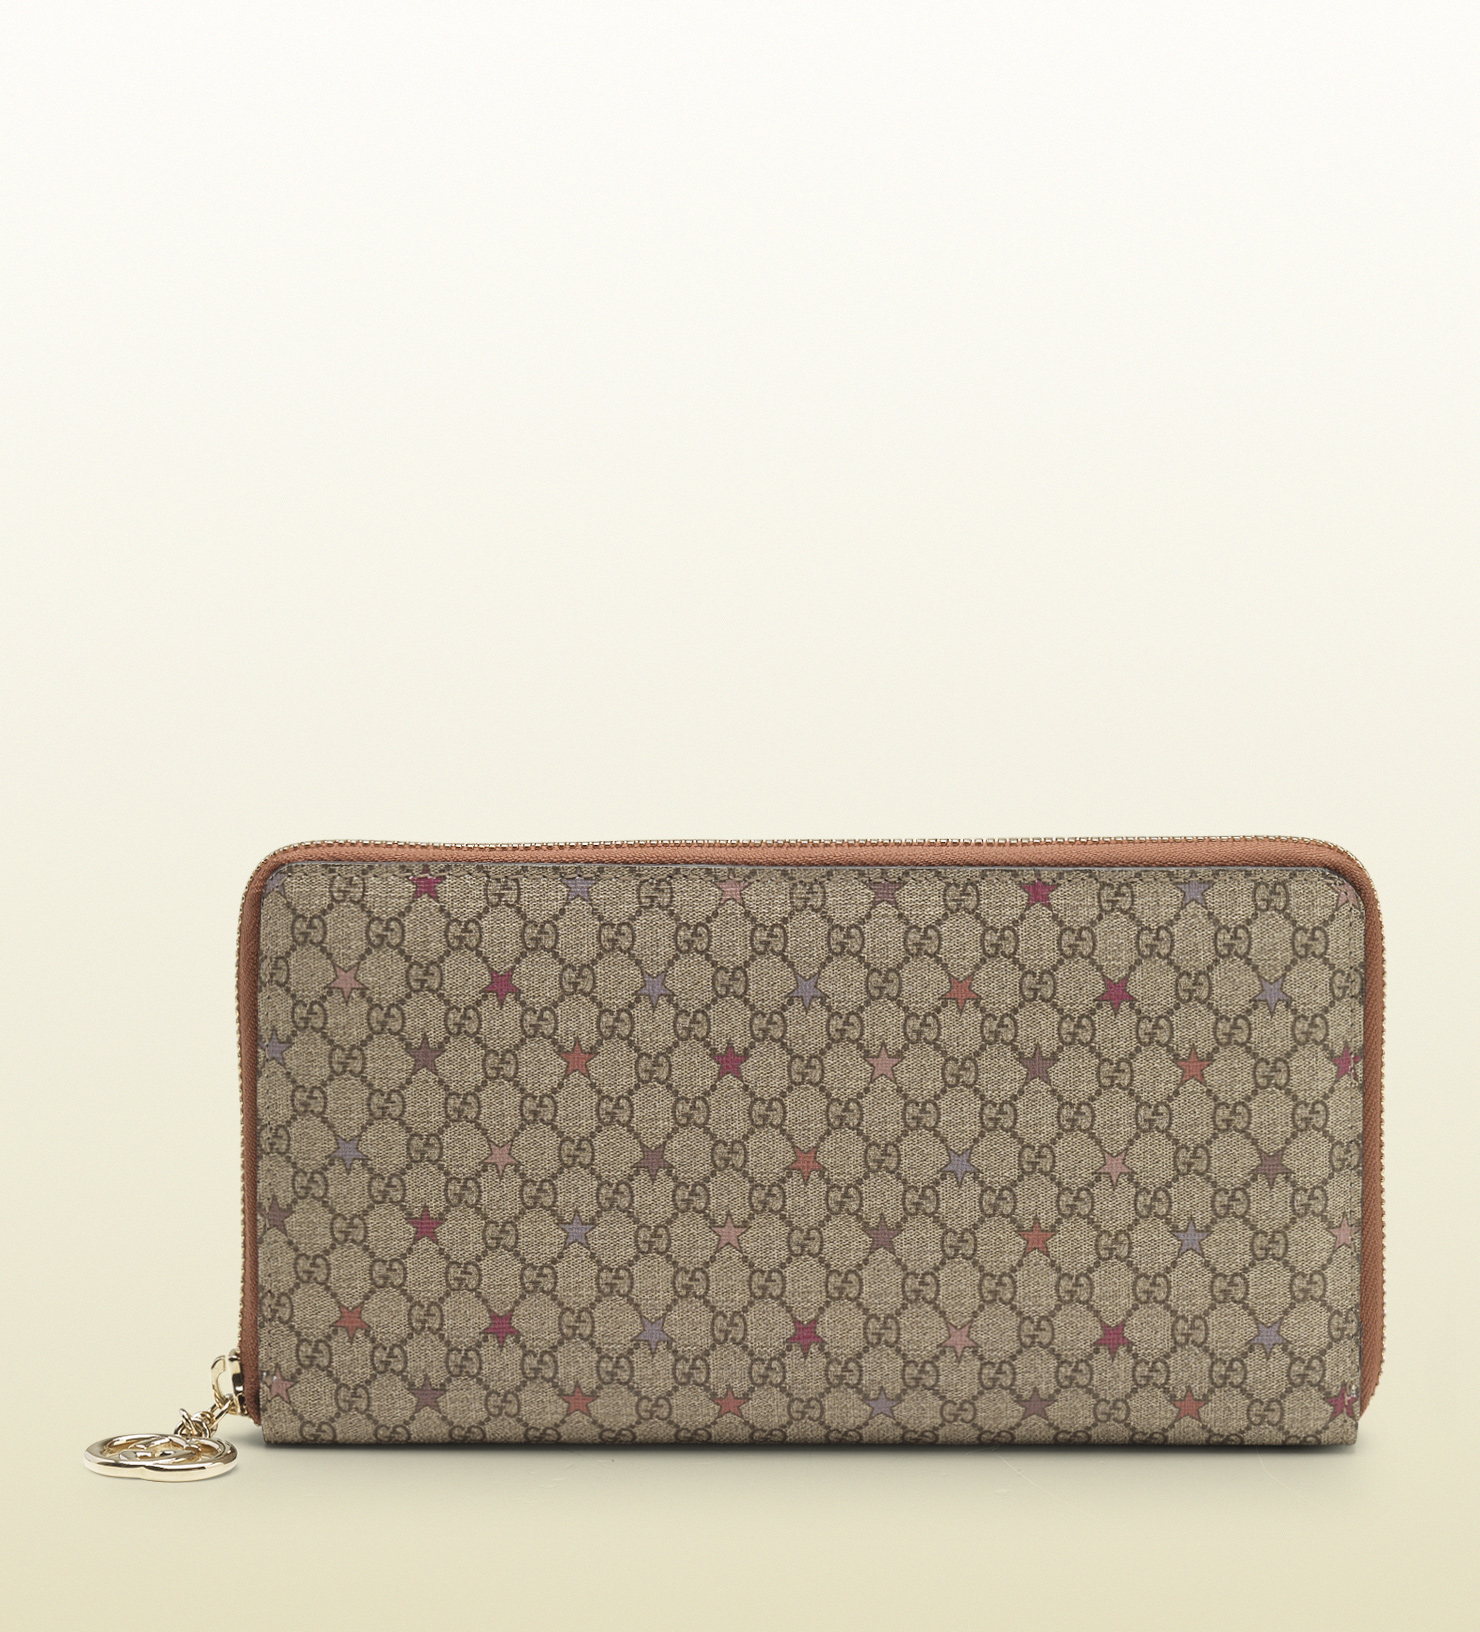 db002a081cb1 Gucci Gg Supreme Canvas Zip Around Wallet in Natural - Lyst